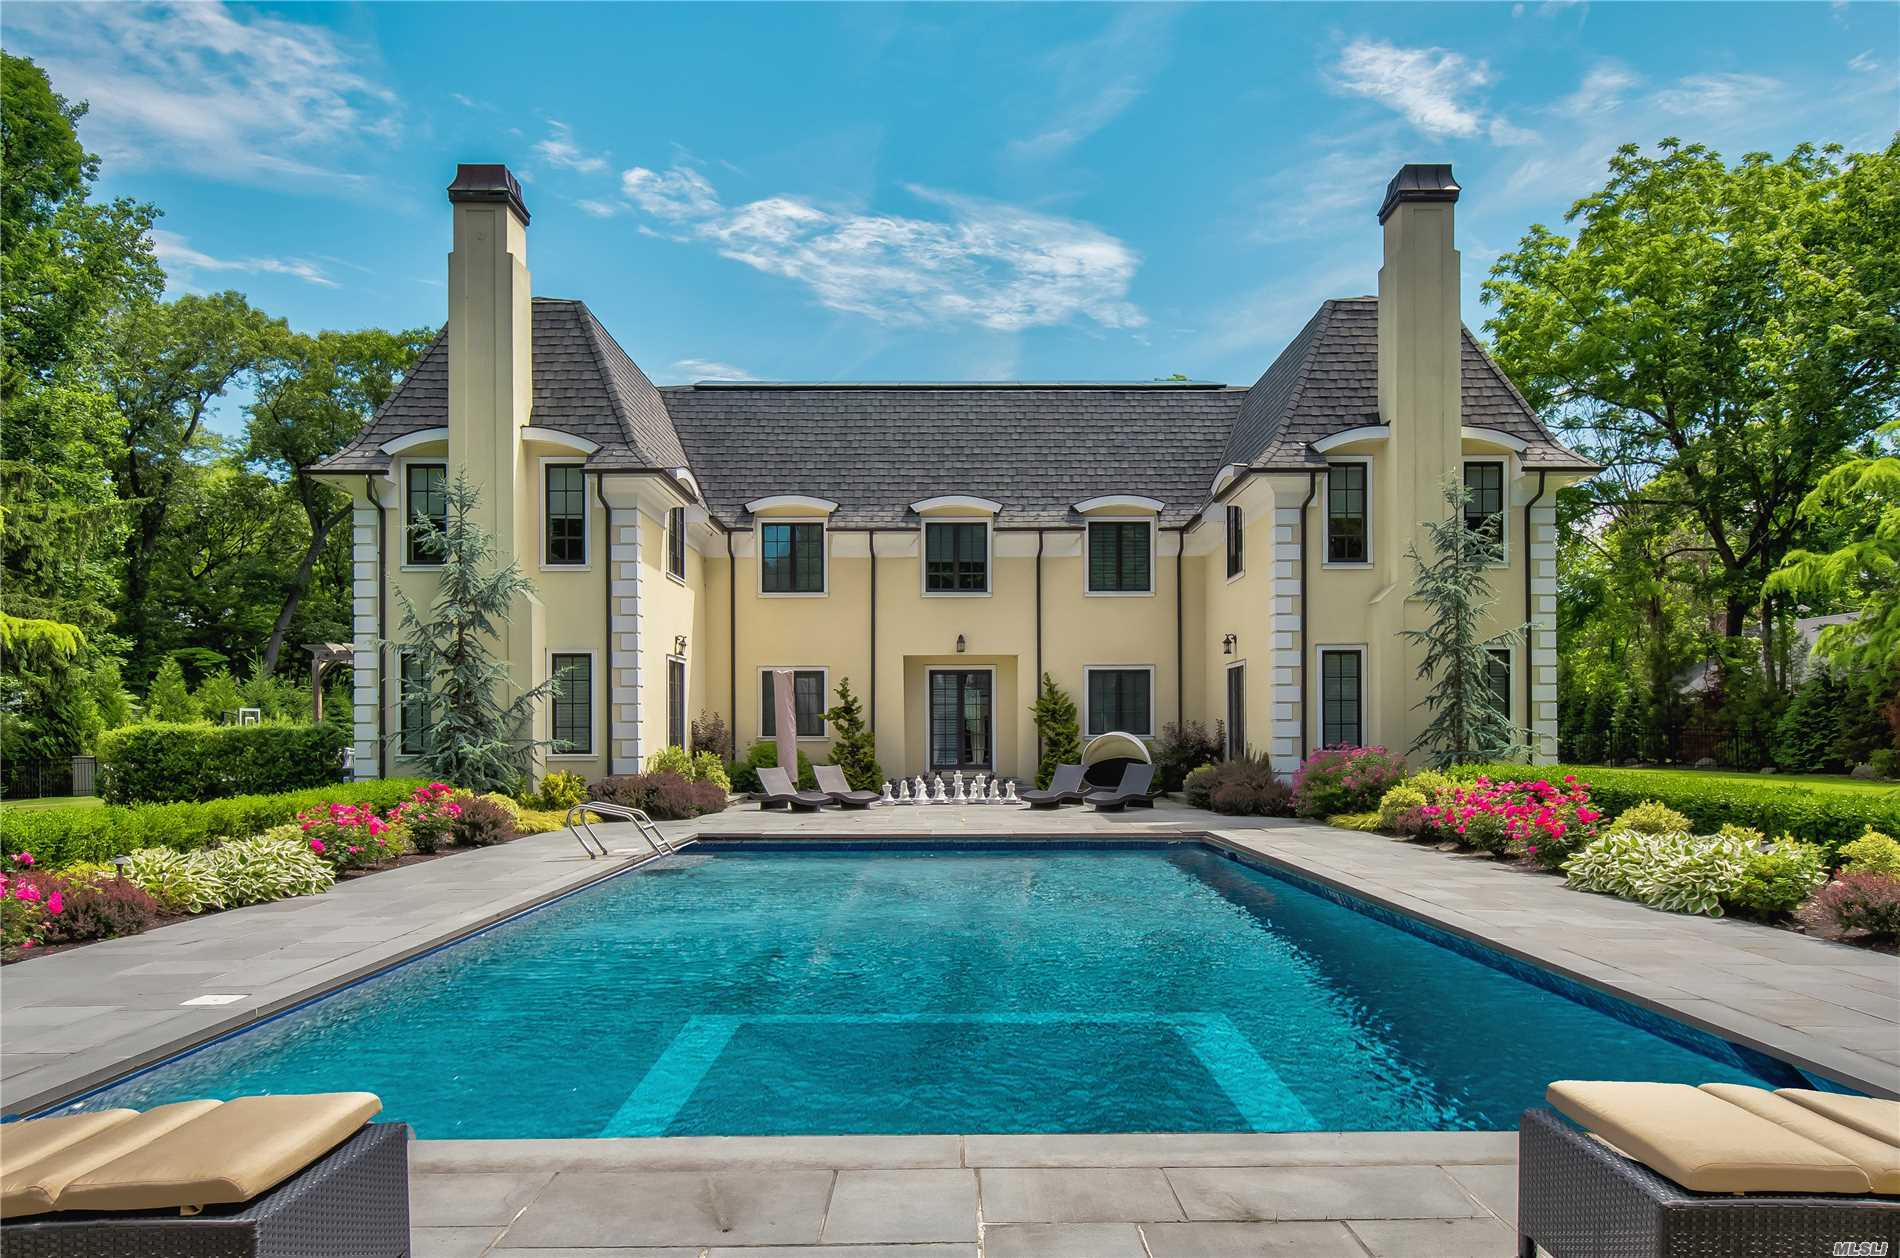 La Bastide - An Absolutely Stunning Home, Built In 2010 With The Finest Materials And Craftsmanship; Open Floor Plan Offers Easy Flow For Entertaining; Pub, Billiards Room And Movie Theatre Are One-Of-A-Kind; Pool, Poolhouse; Garage With Loft Gym; Separate Bldg Has Changing Room, Full Bath. Located In Sought-After Latt Harbor Estates With Beach, Beach House, Small Boat Mooring (Fee). A Sotheby's Masterpiece Listing.